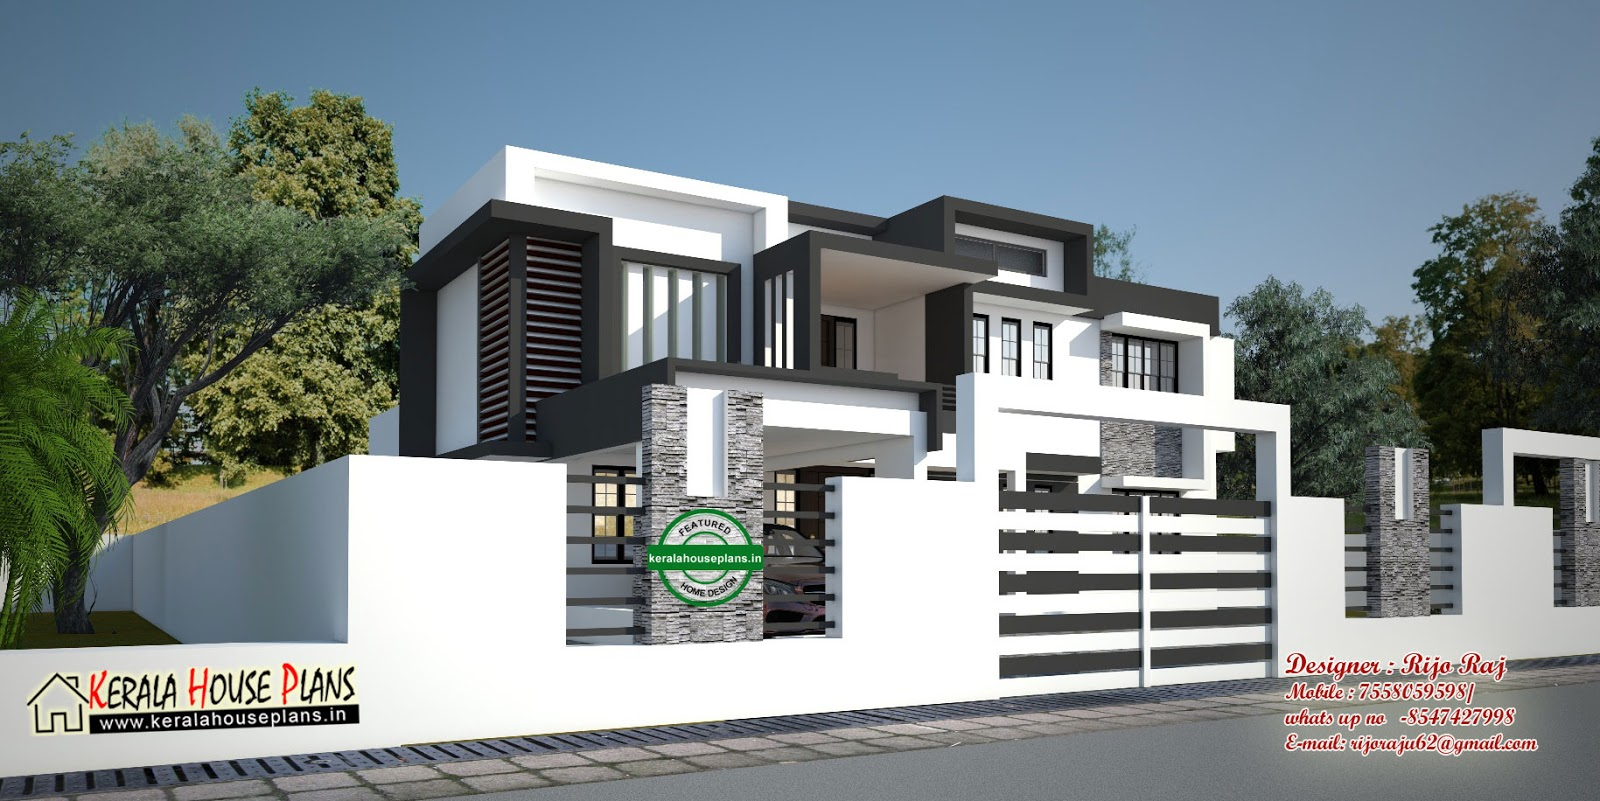 Kerala house plans designs floor plans and elevation for Home designs and plans